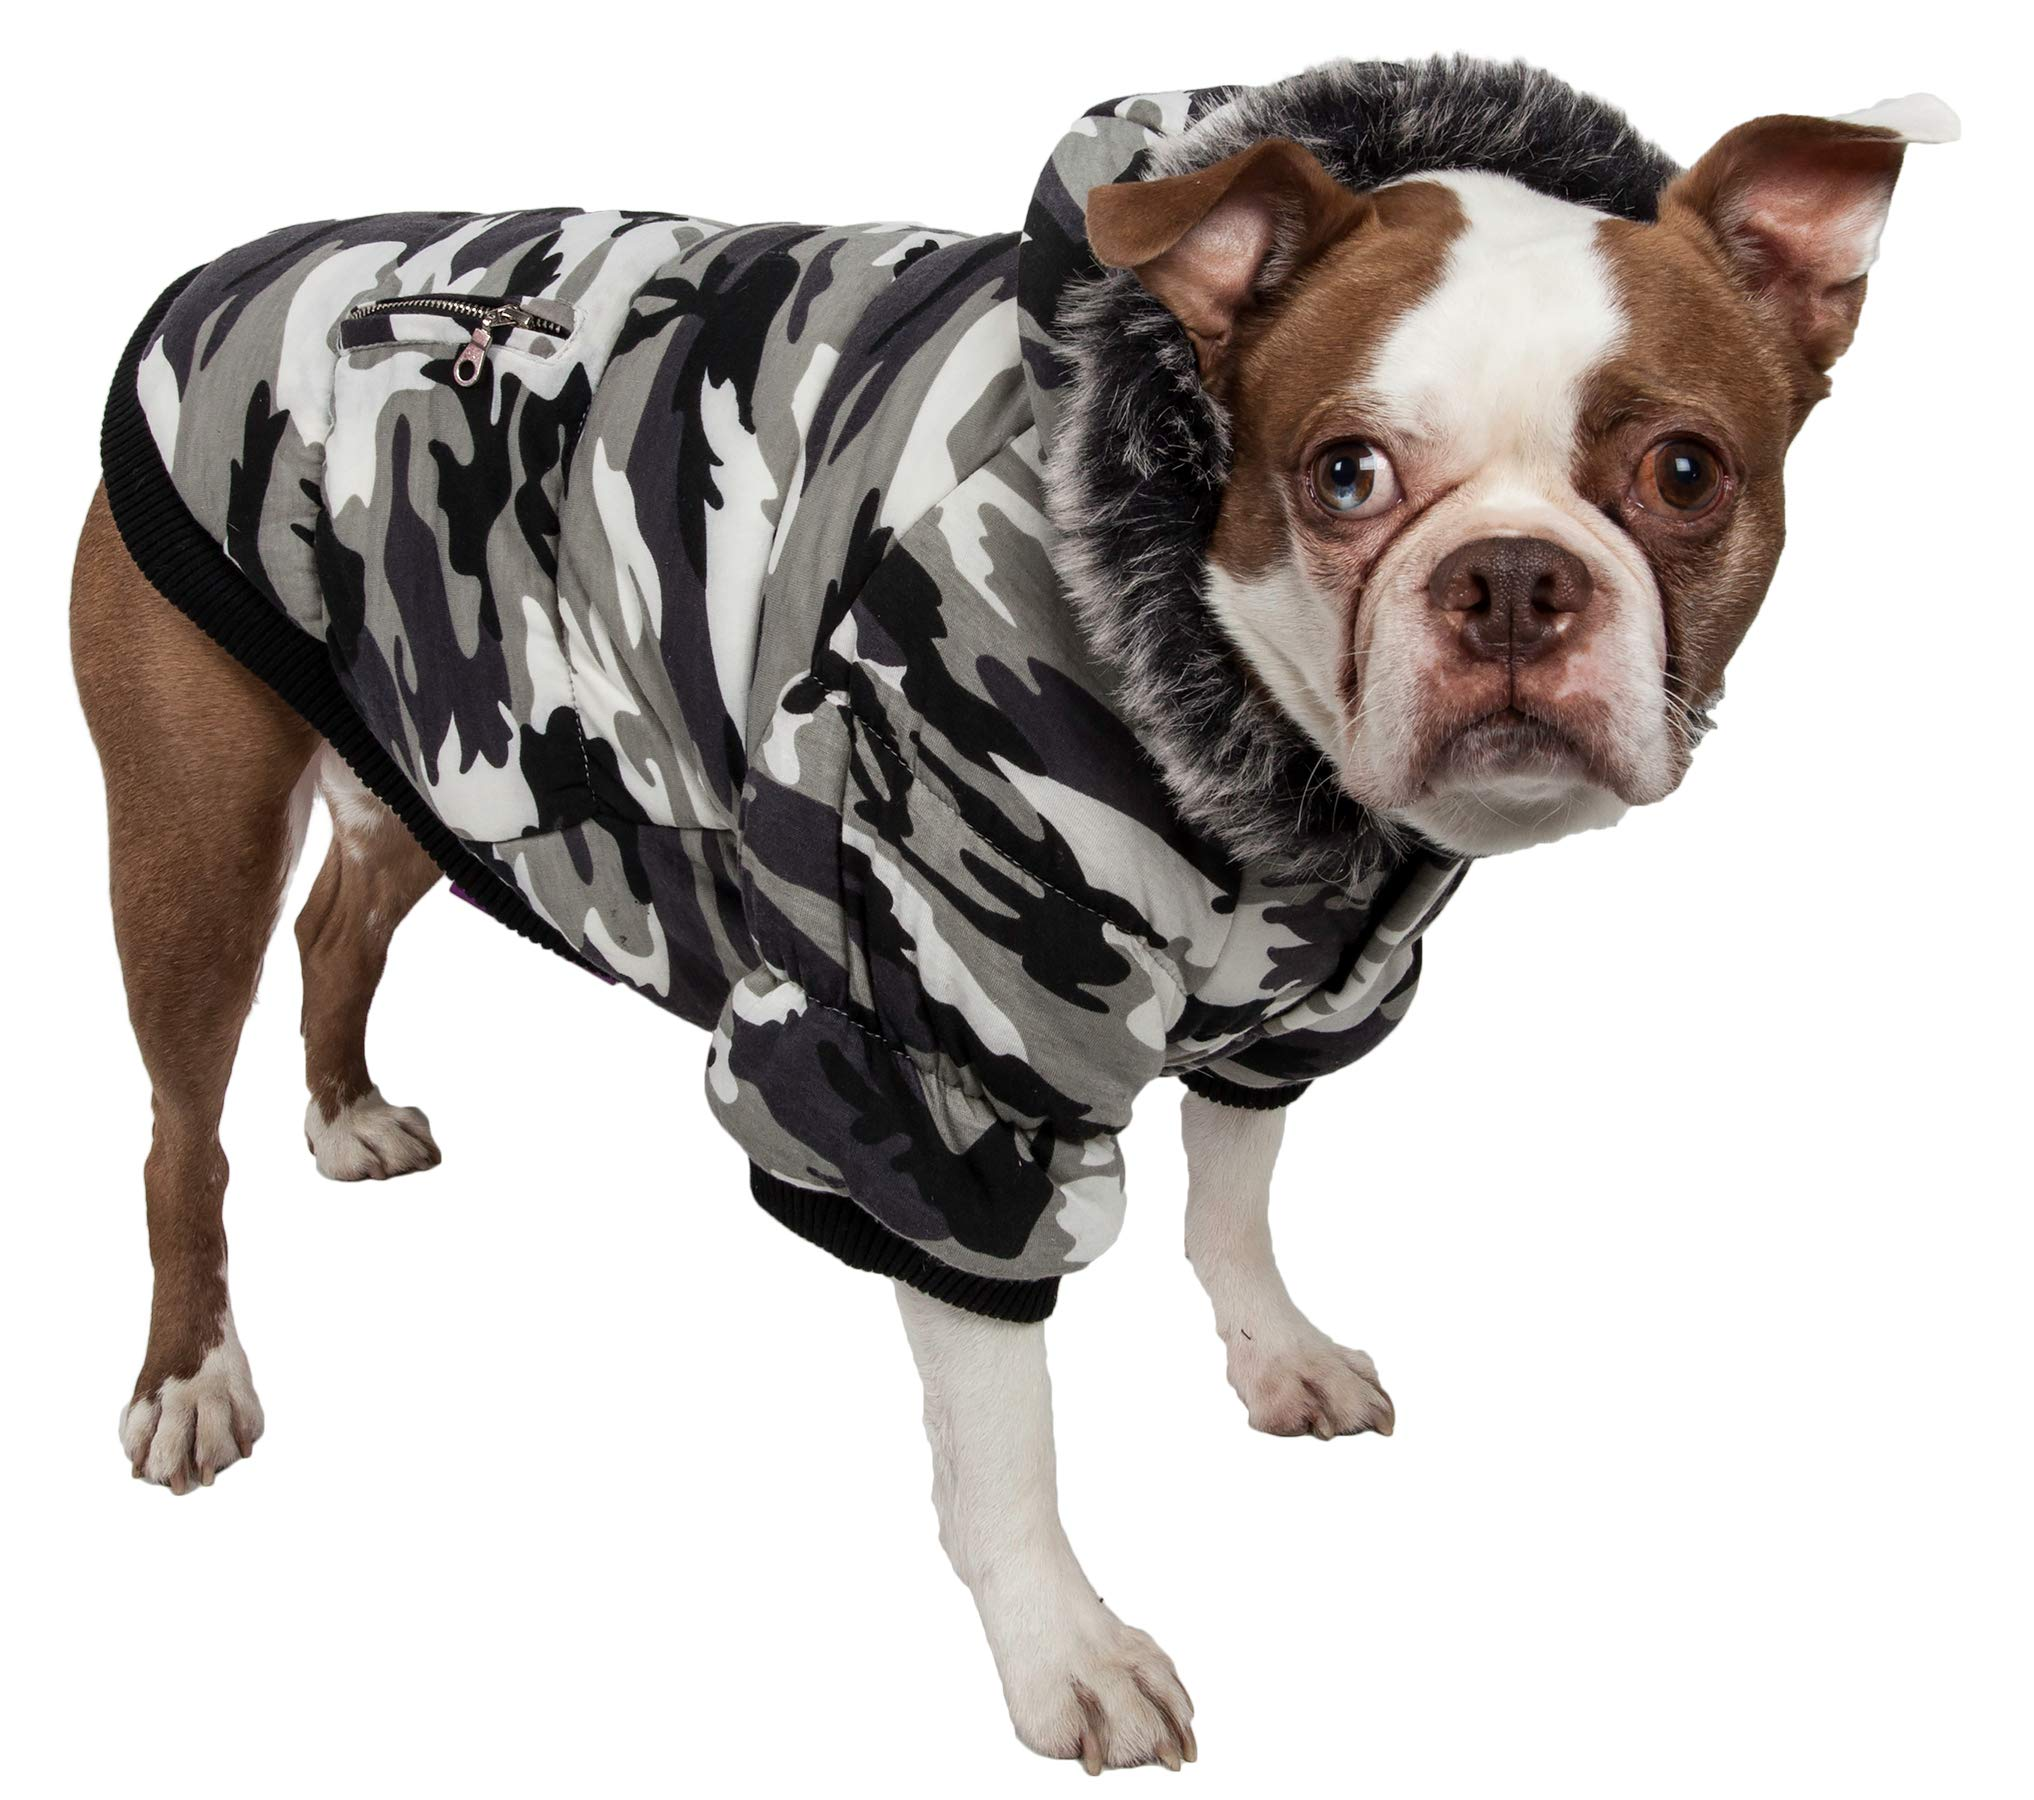 PET LIFE Classic Metallic Fashion Pet Dog Coat Jacket Parka w/ 3M Insulation and Removable Hood, Small, Deer Pattern by Pet Life